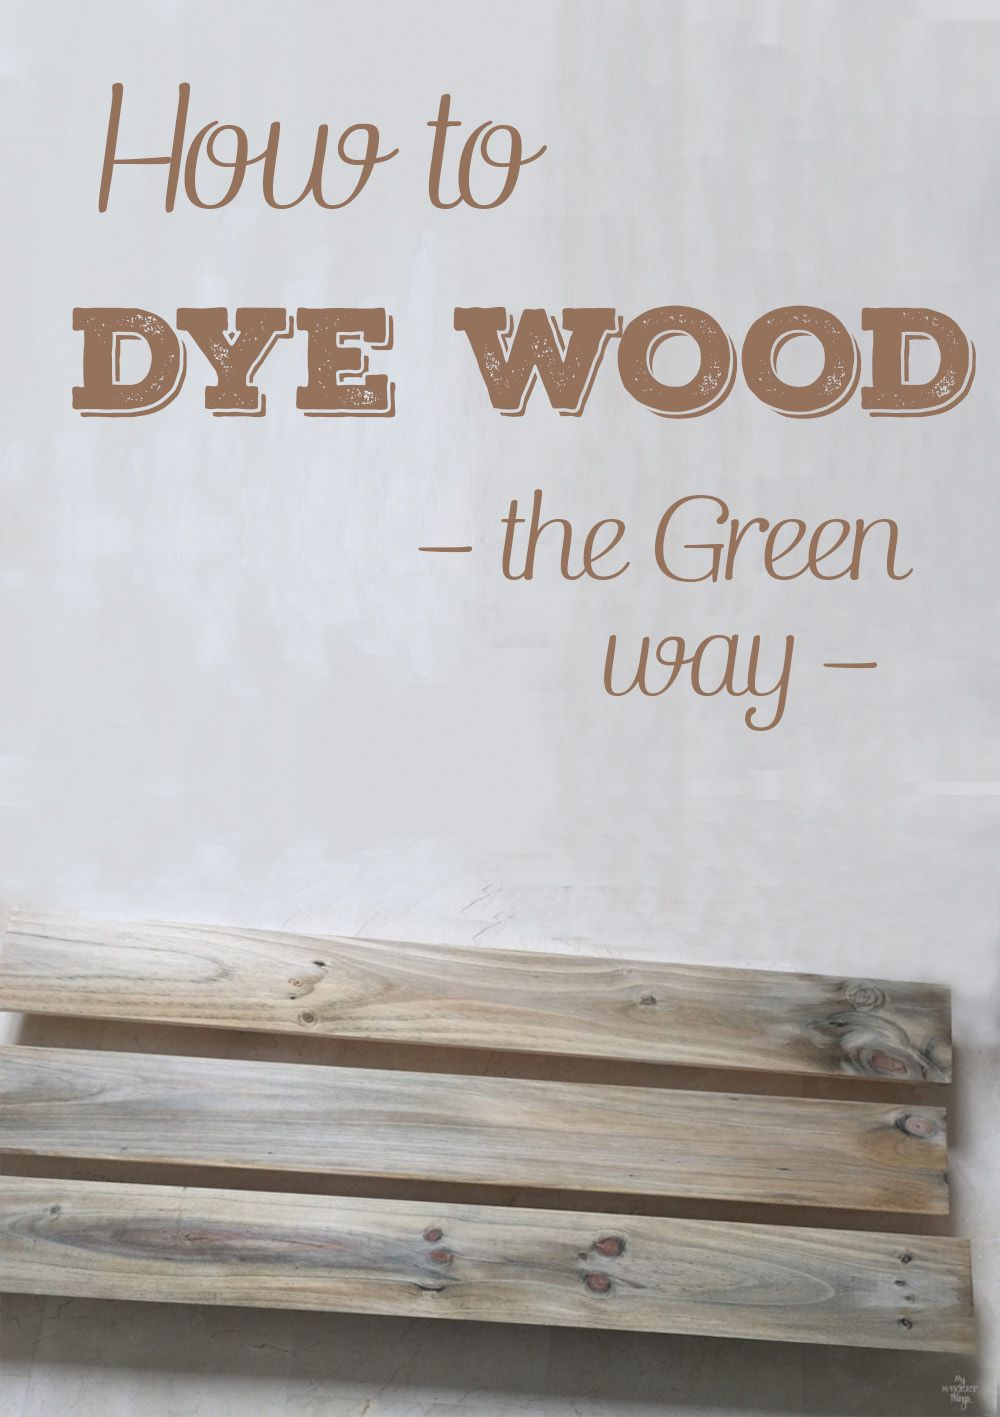 How to dye wood the green way | PAINT STAIN TIPS | Diy wood stain